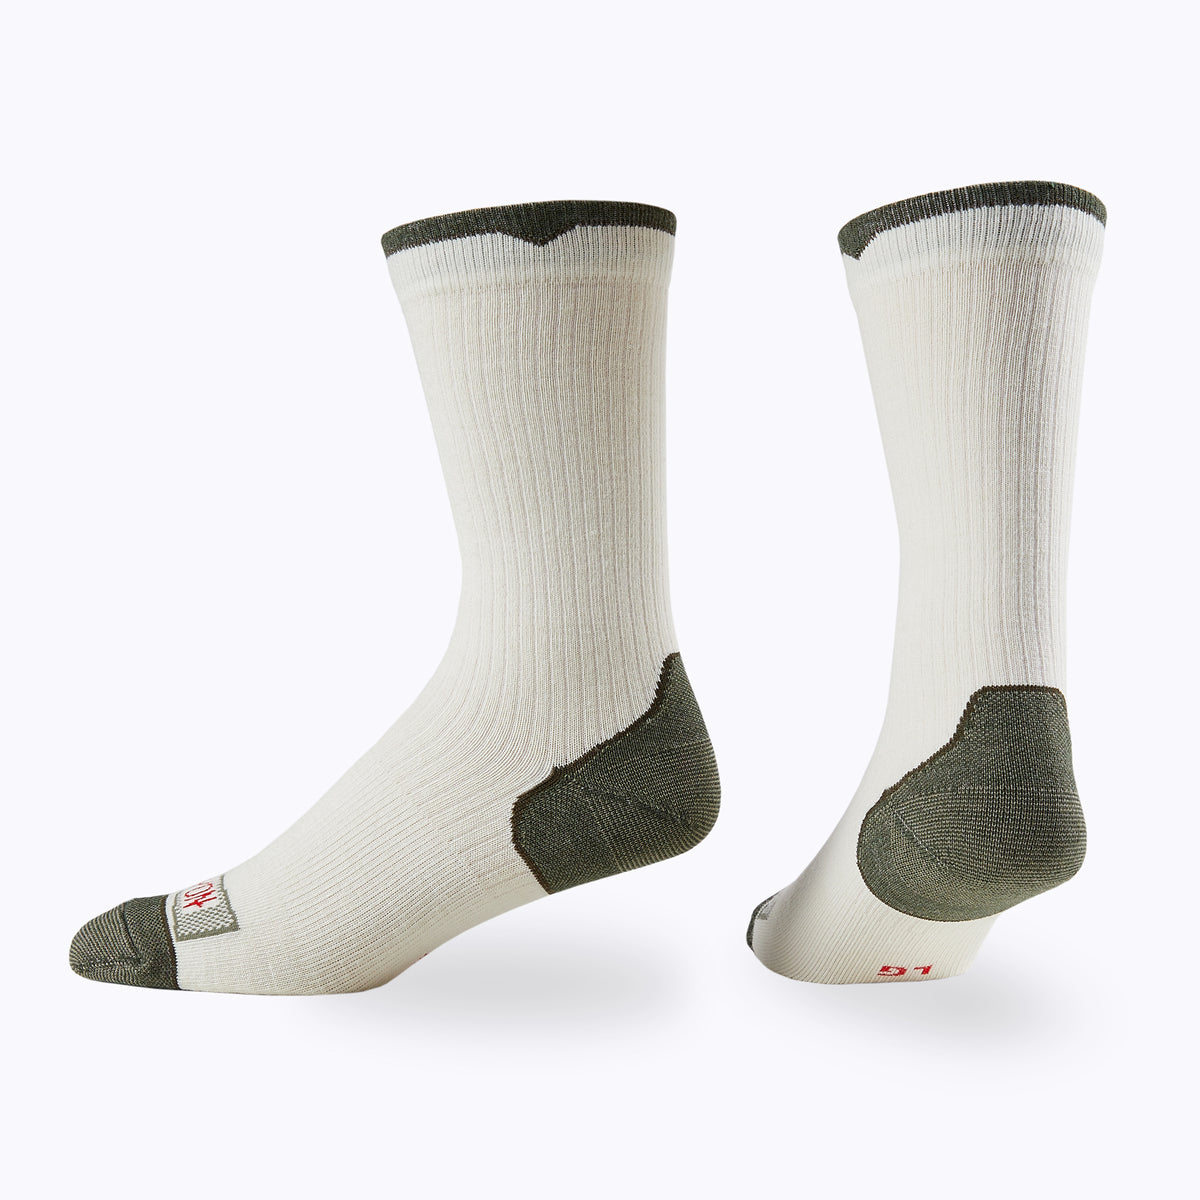 Essential Men's Crew Socks -  by Canyon Socks